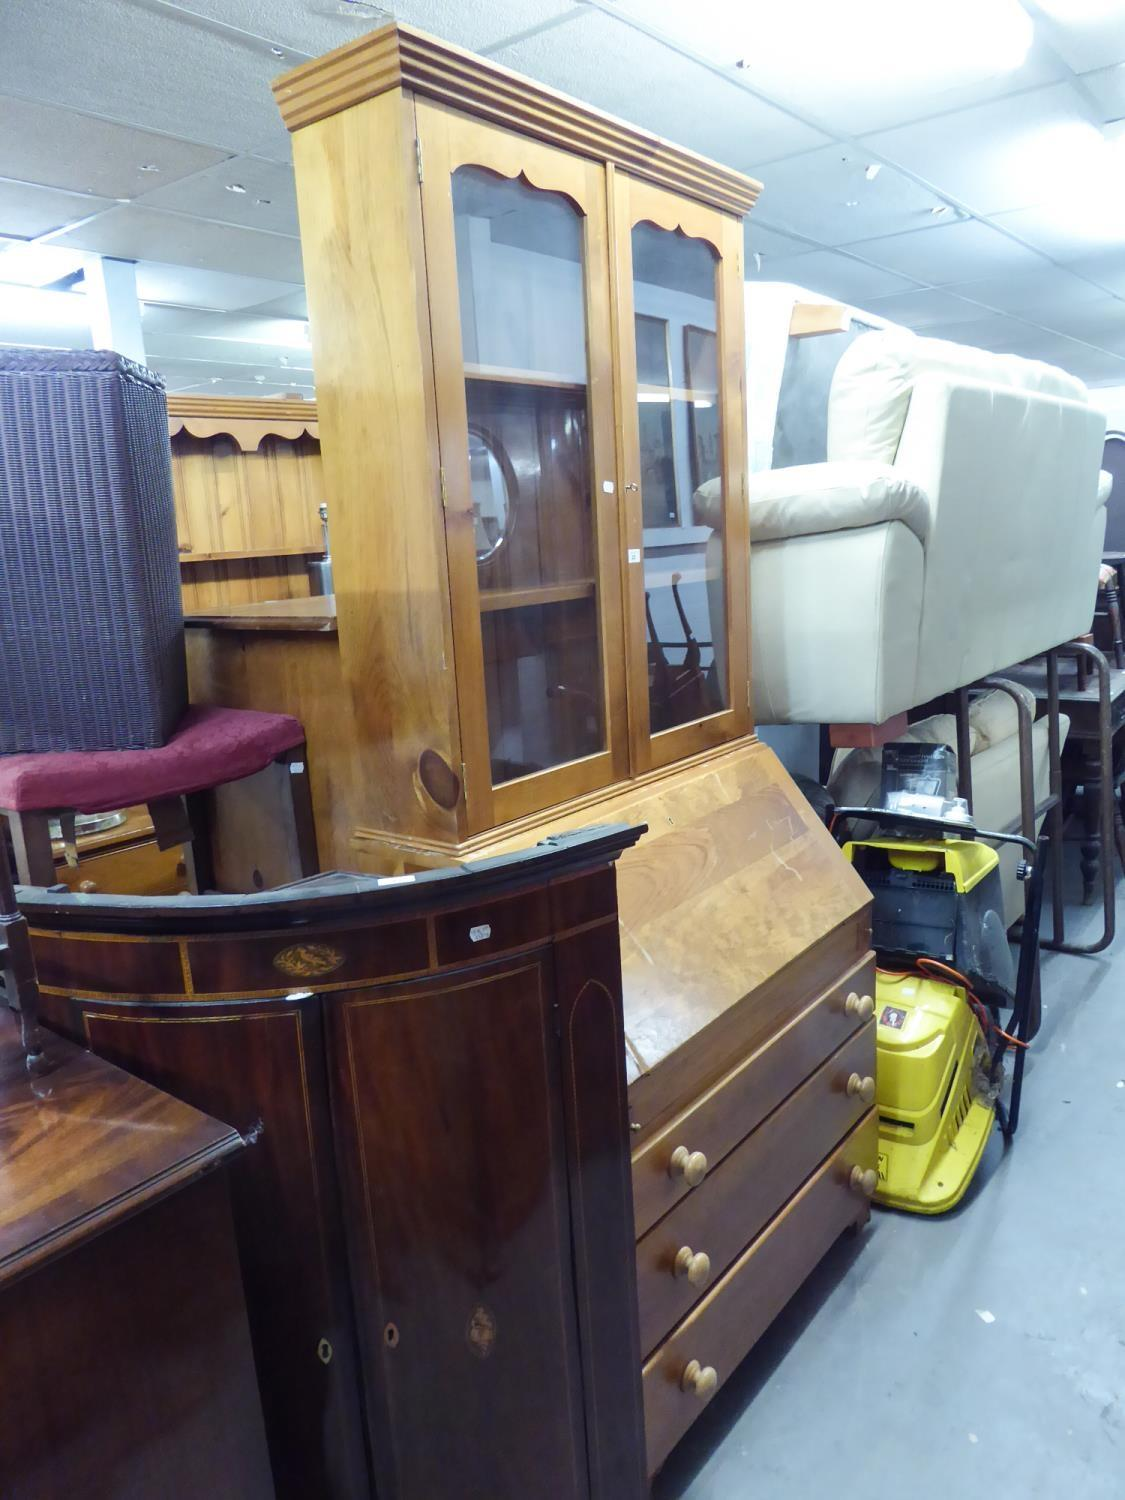 Lot 26 - A PINE BUREAU BOOKCASE, THE UPPER SECTION HAVING TWO GLAZED DOORS, THE BASE HAIVNG FALL-FRONT OVER